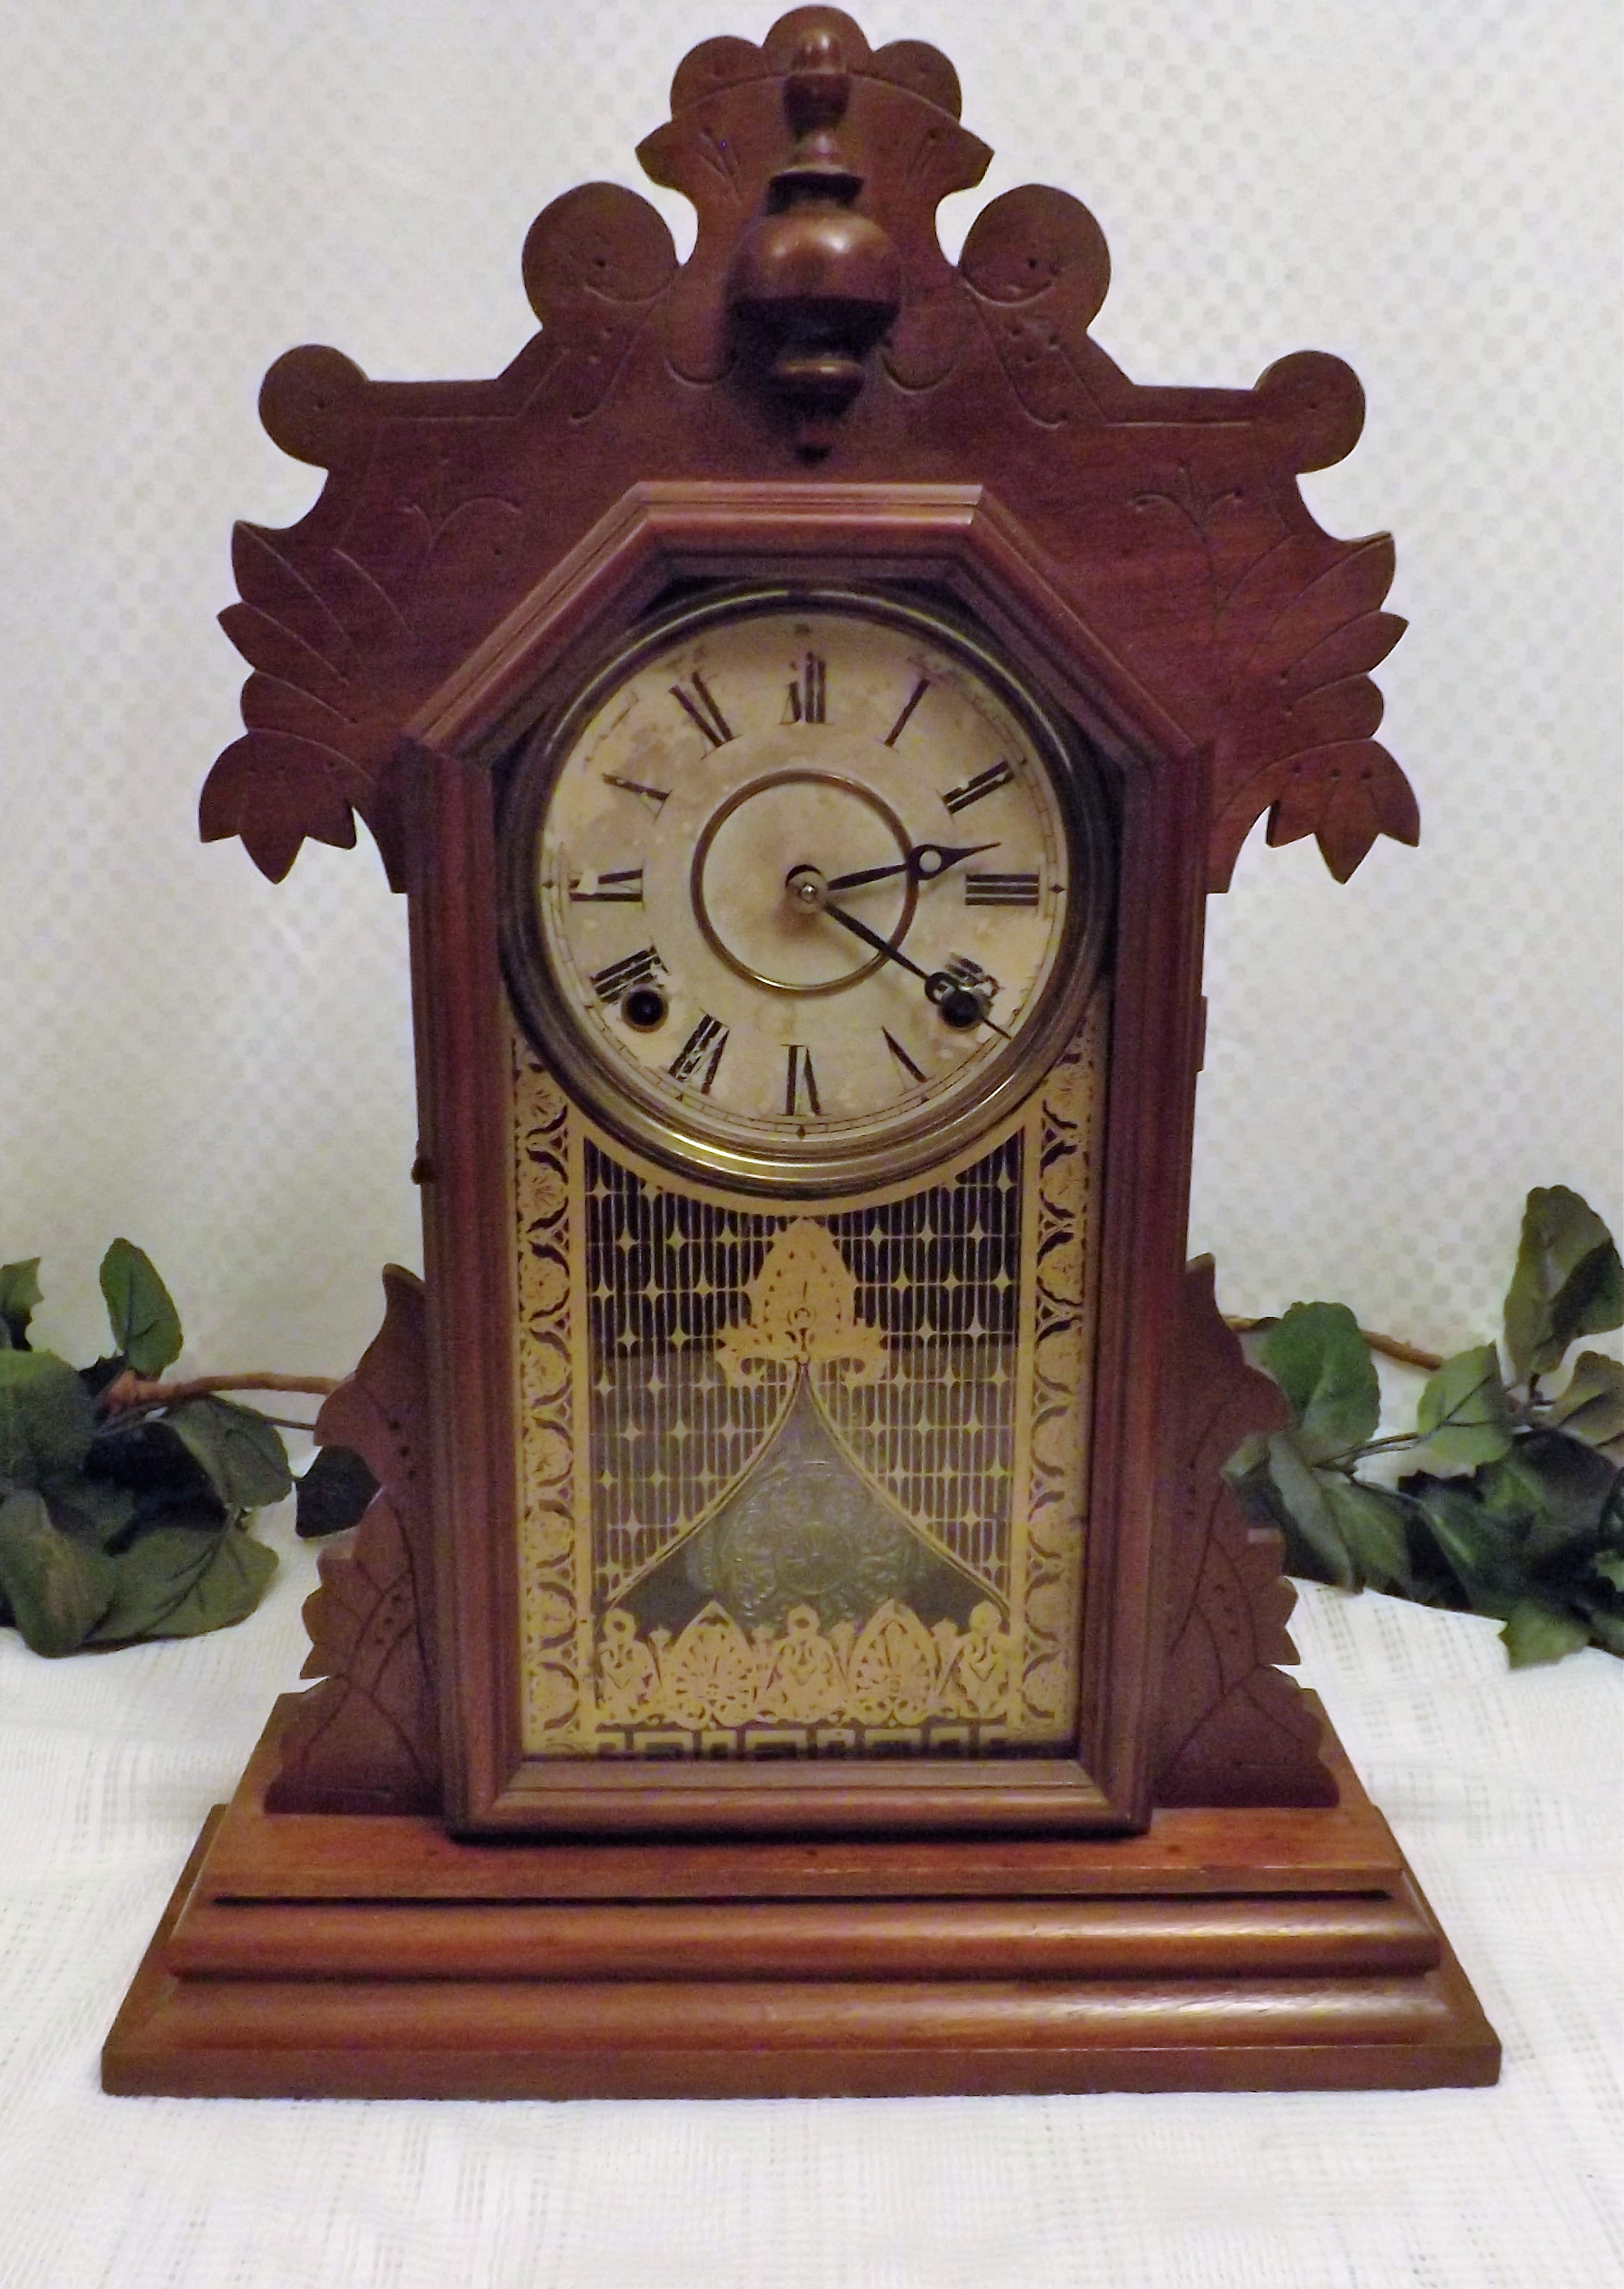 From 1881 To 1885 The E Ingraham Co Name Was Used For These 4 Years Only This Beautiful Clock Is A 31 Day Time And Strike With Chimes On Half